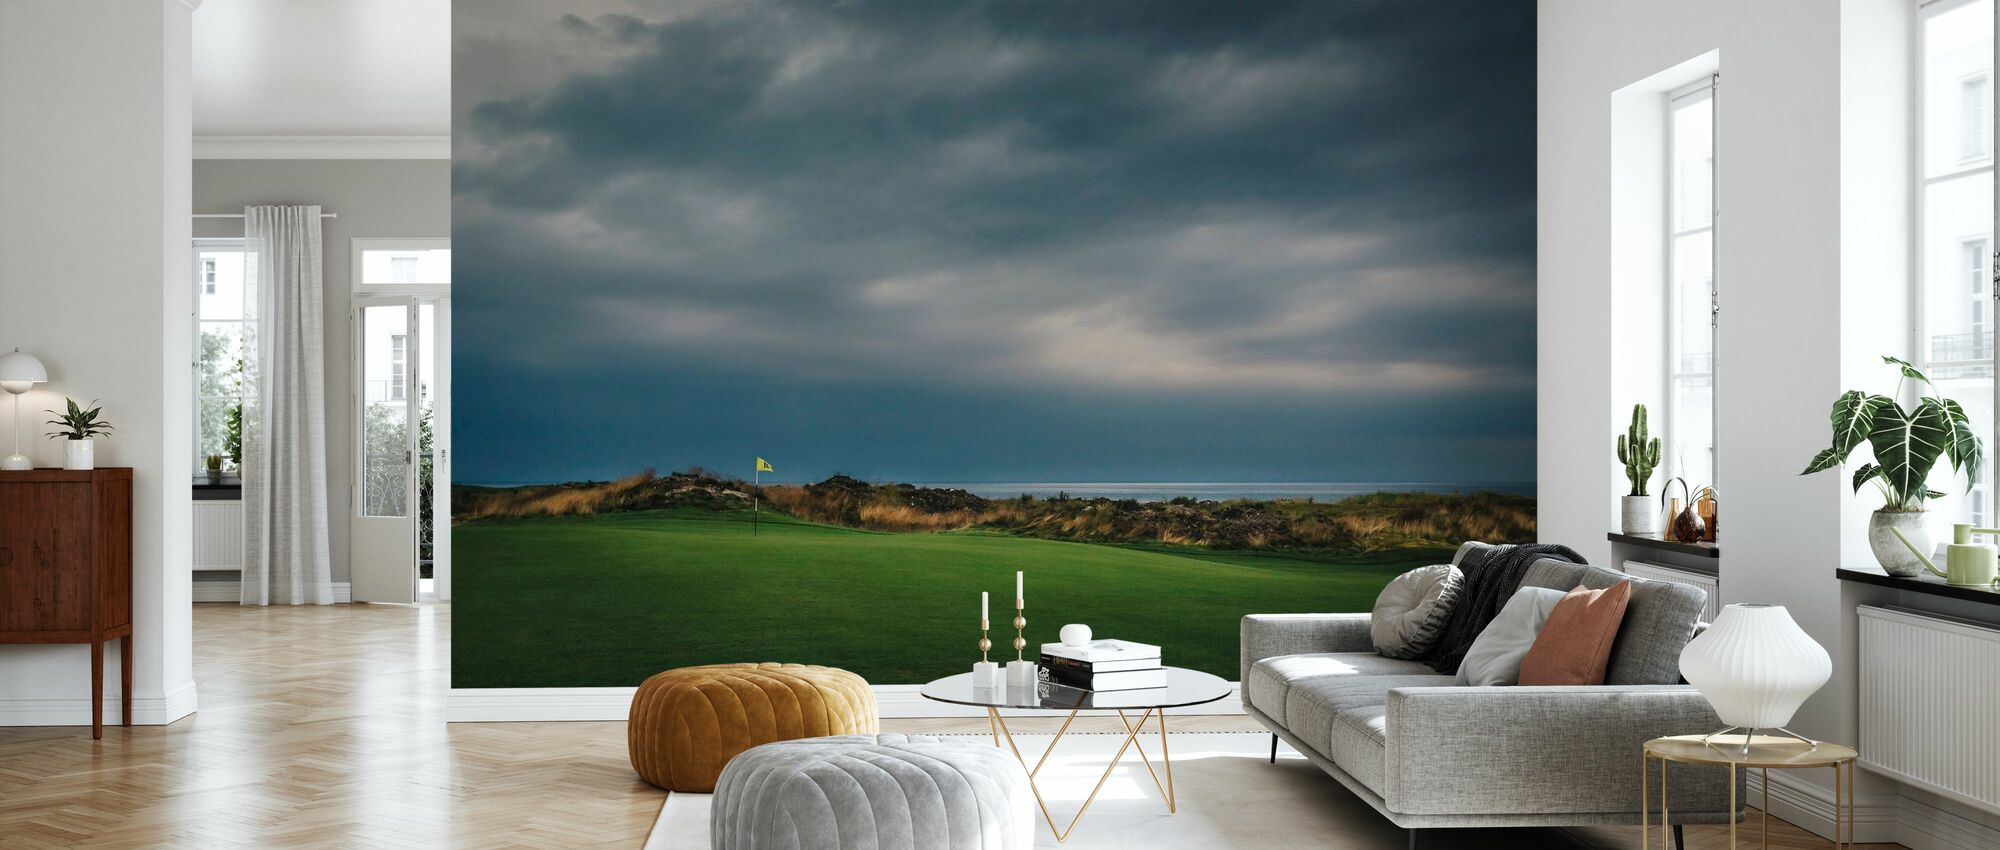 Golf Course in Lofoten, Norway - Wallpaper - Living Room